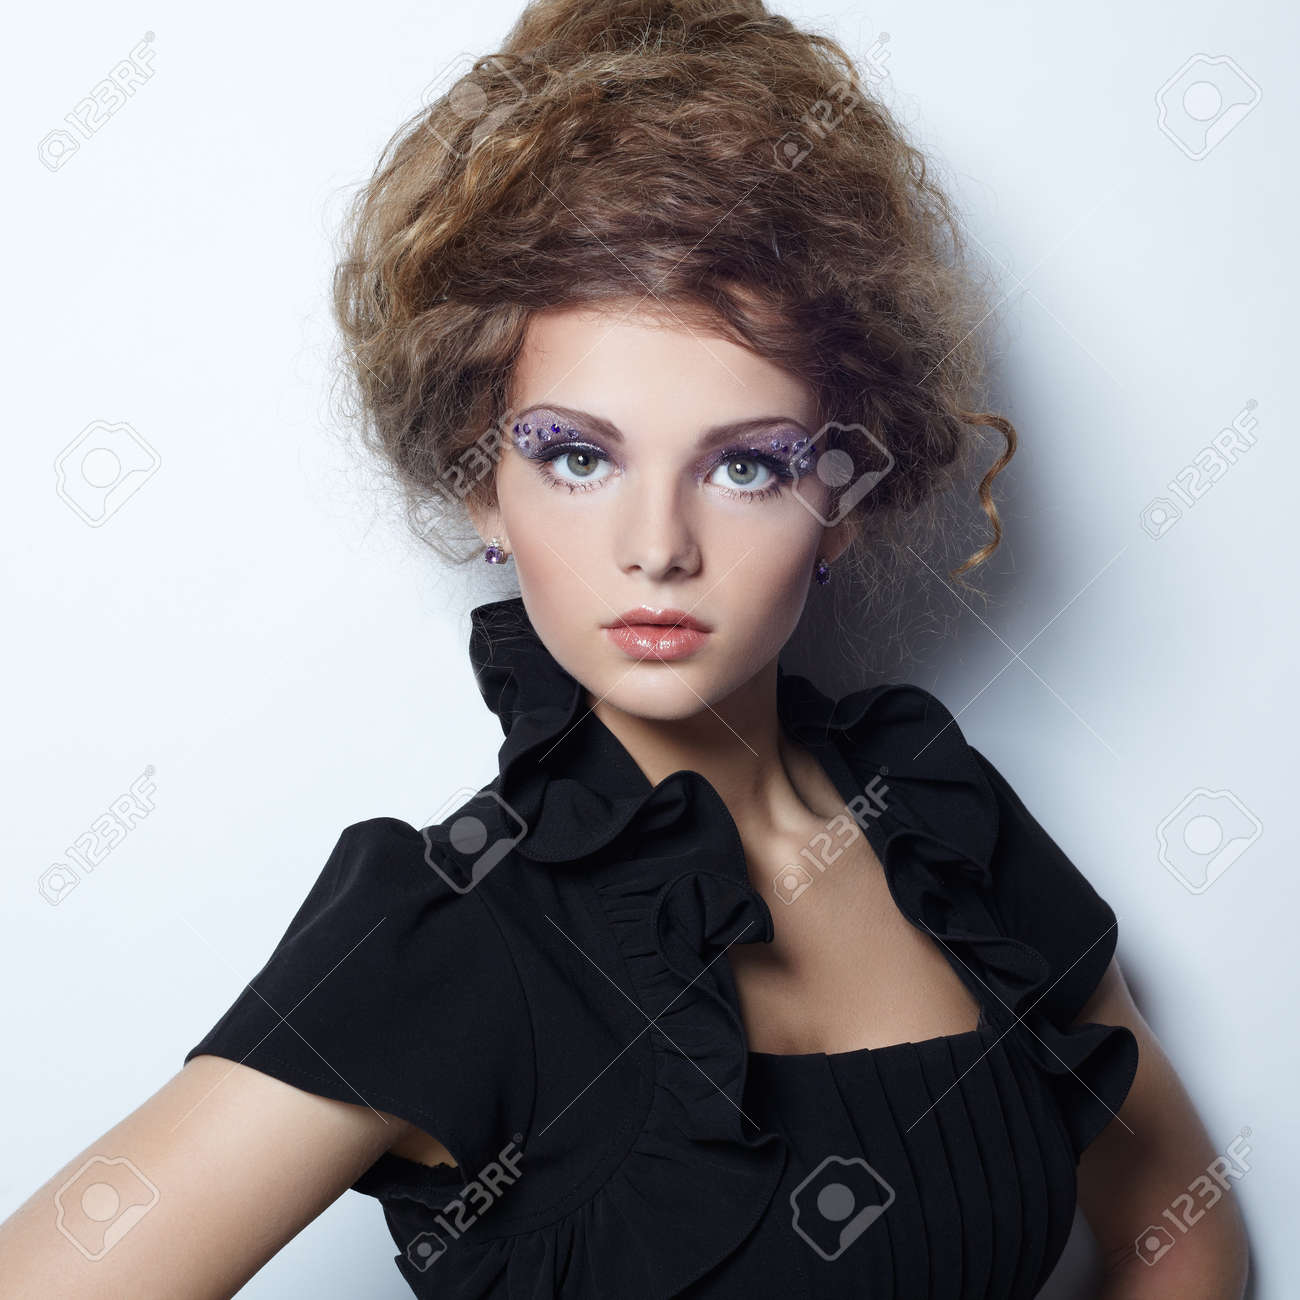 Portrait of beautiful woman with elegant hairstyle Stock Photo - 20619470